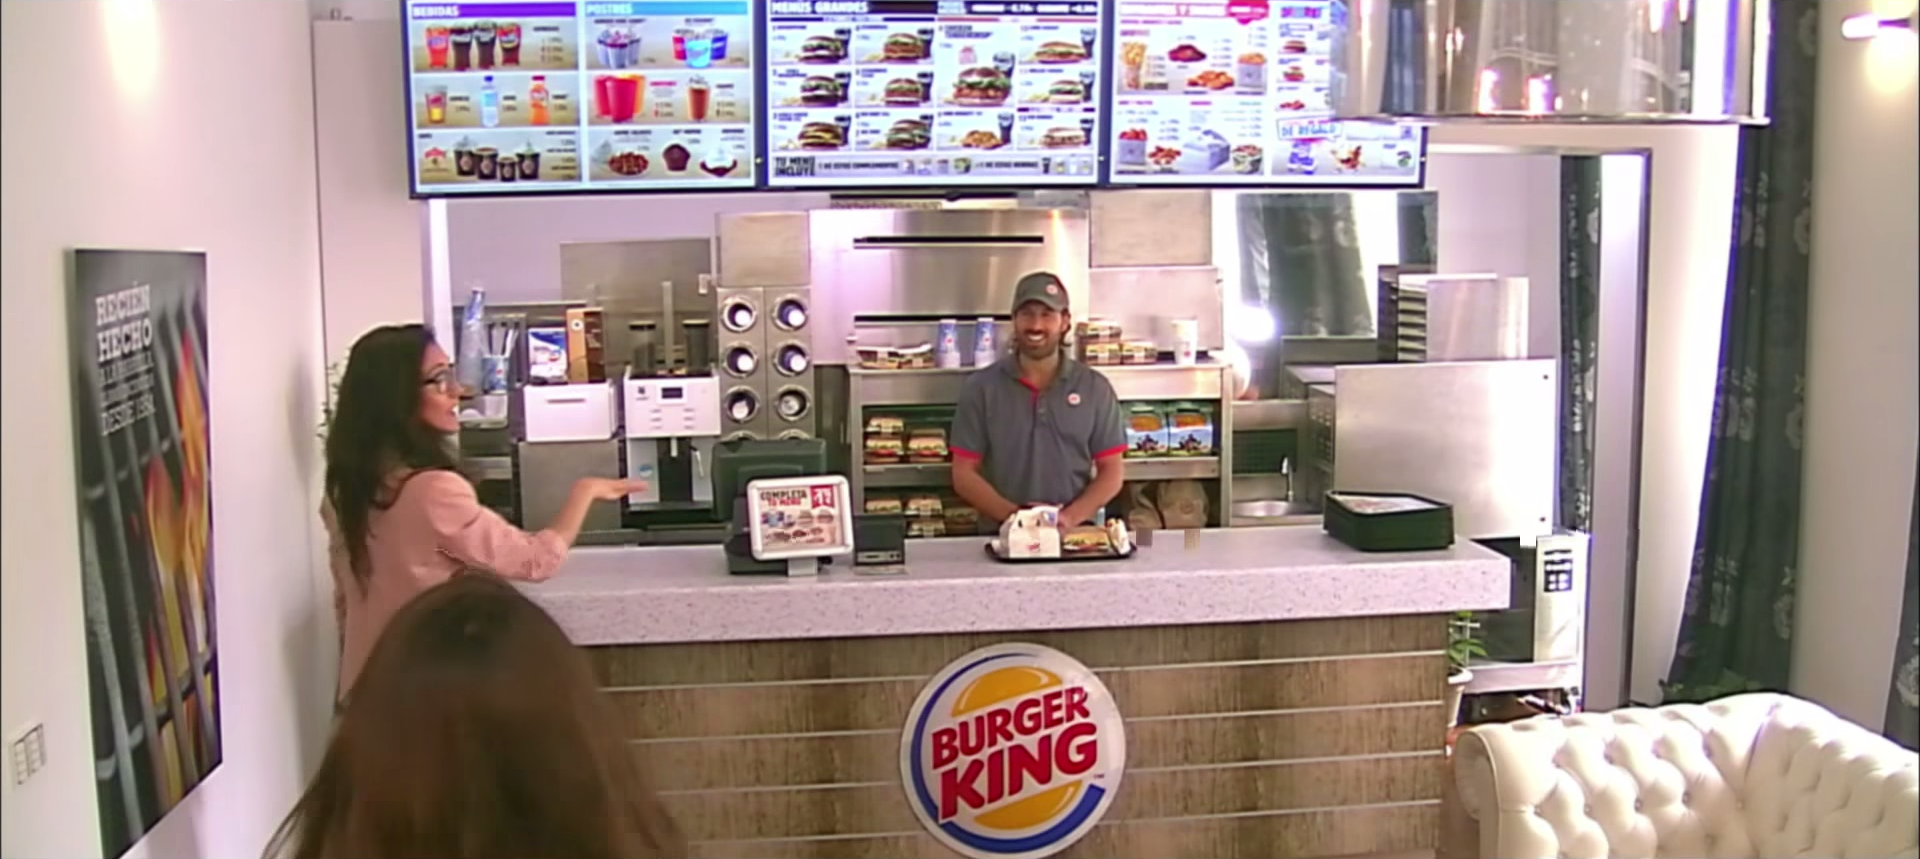 burger_king_whopper_apartment_brand_experience_experiential_2